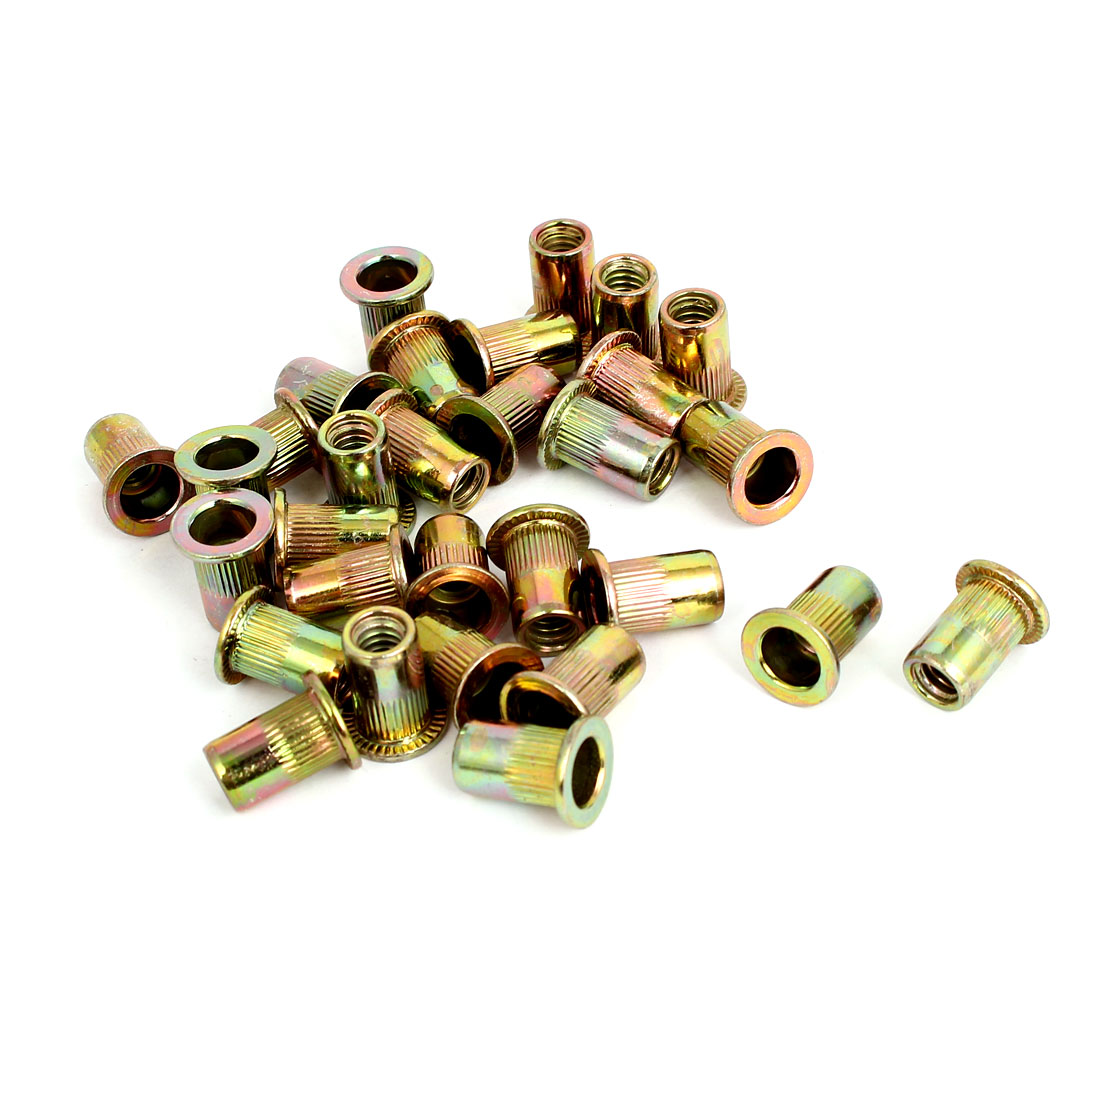 "1/4"" Thread 15mm Long Rivet Nut Insert Nutsert 30pcs"